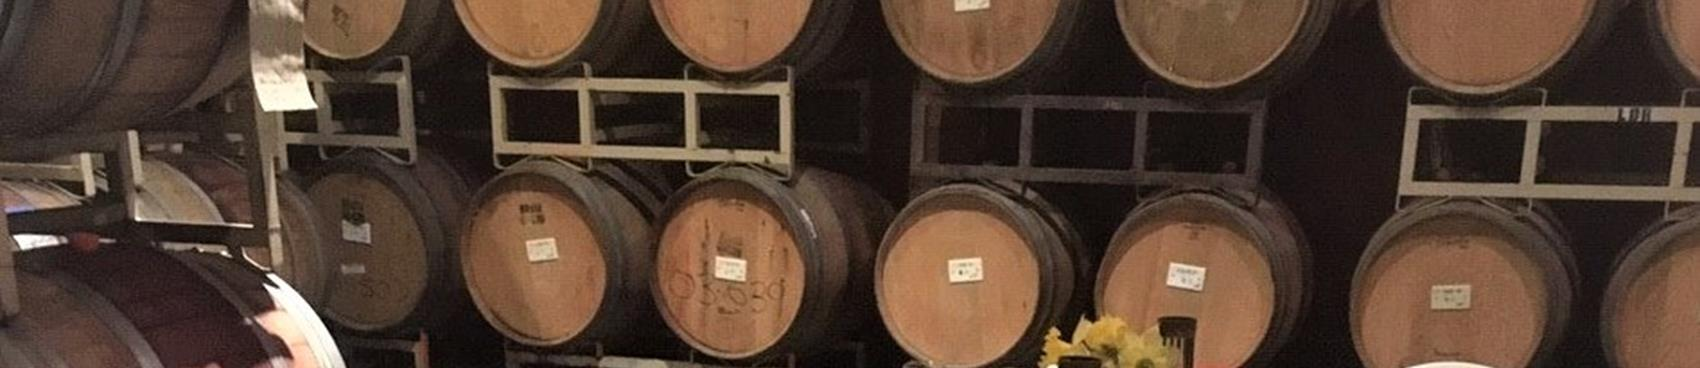 Purchase Tickets to Trapped In The Barrel Room! at Crystal Basin Cellars on CellarPass